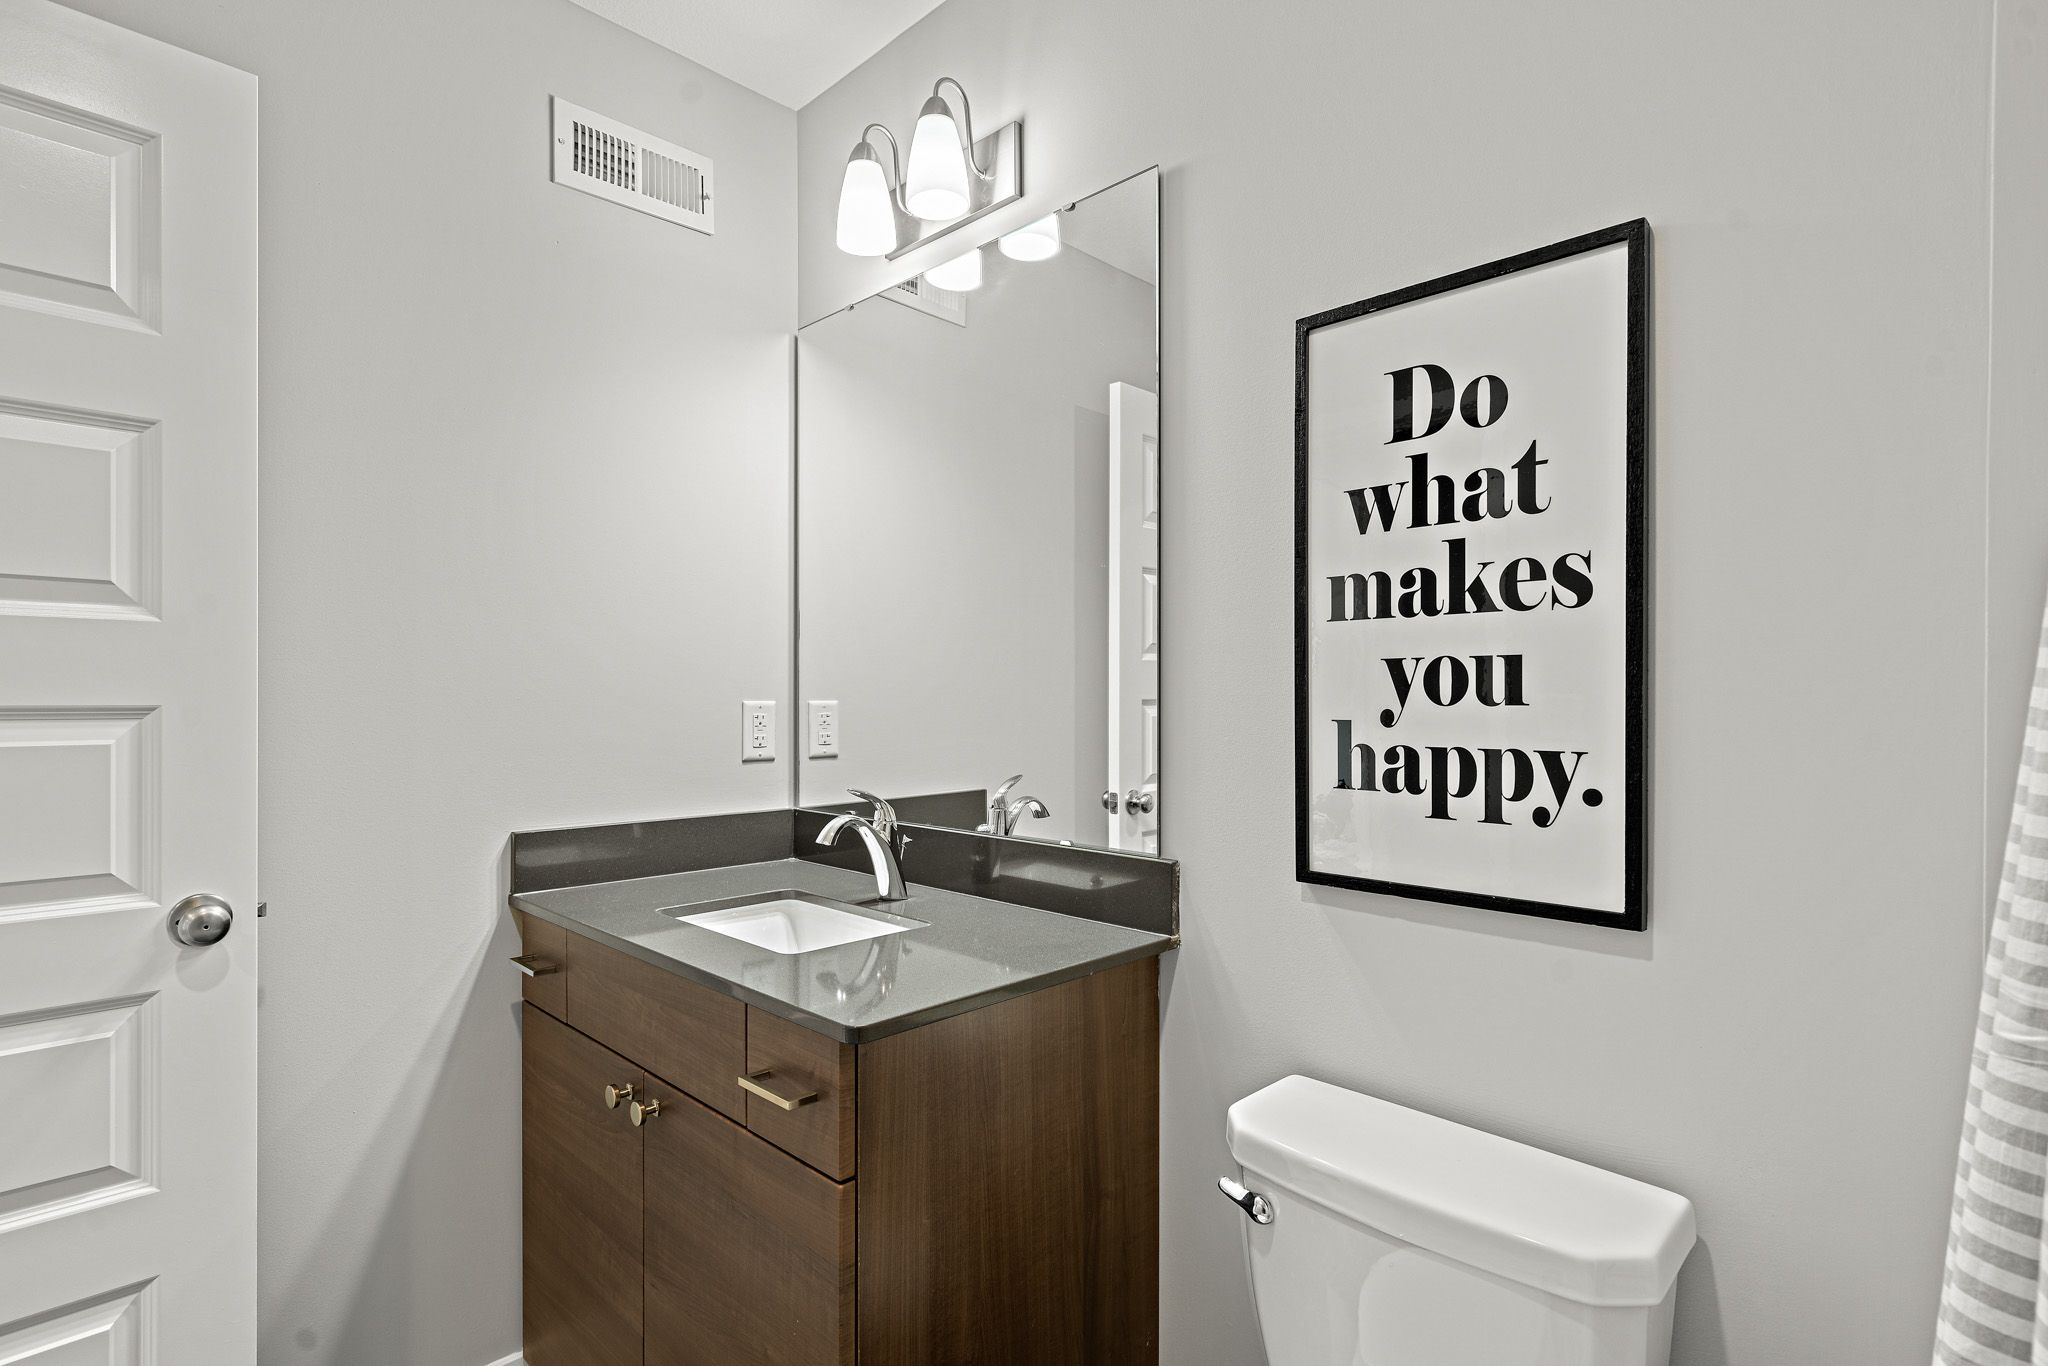 Bathroom featured in the sienna-contemporary By clover & hive in Kansas City, MO